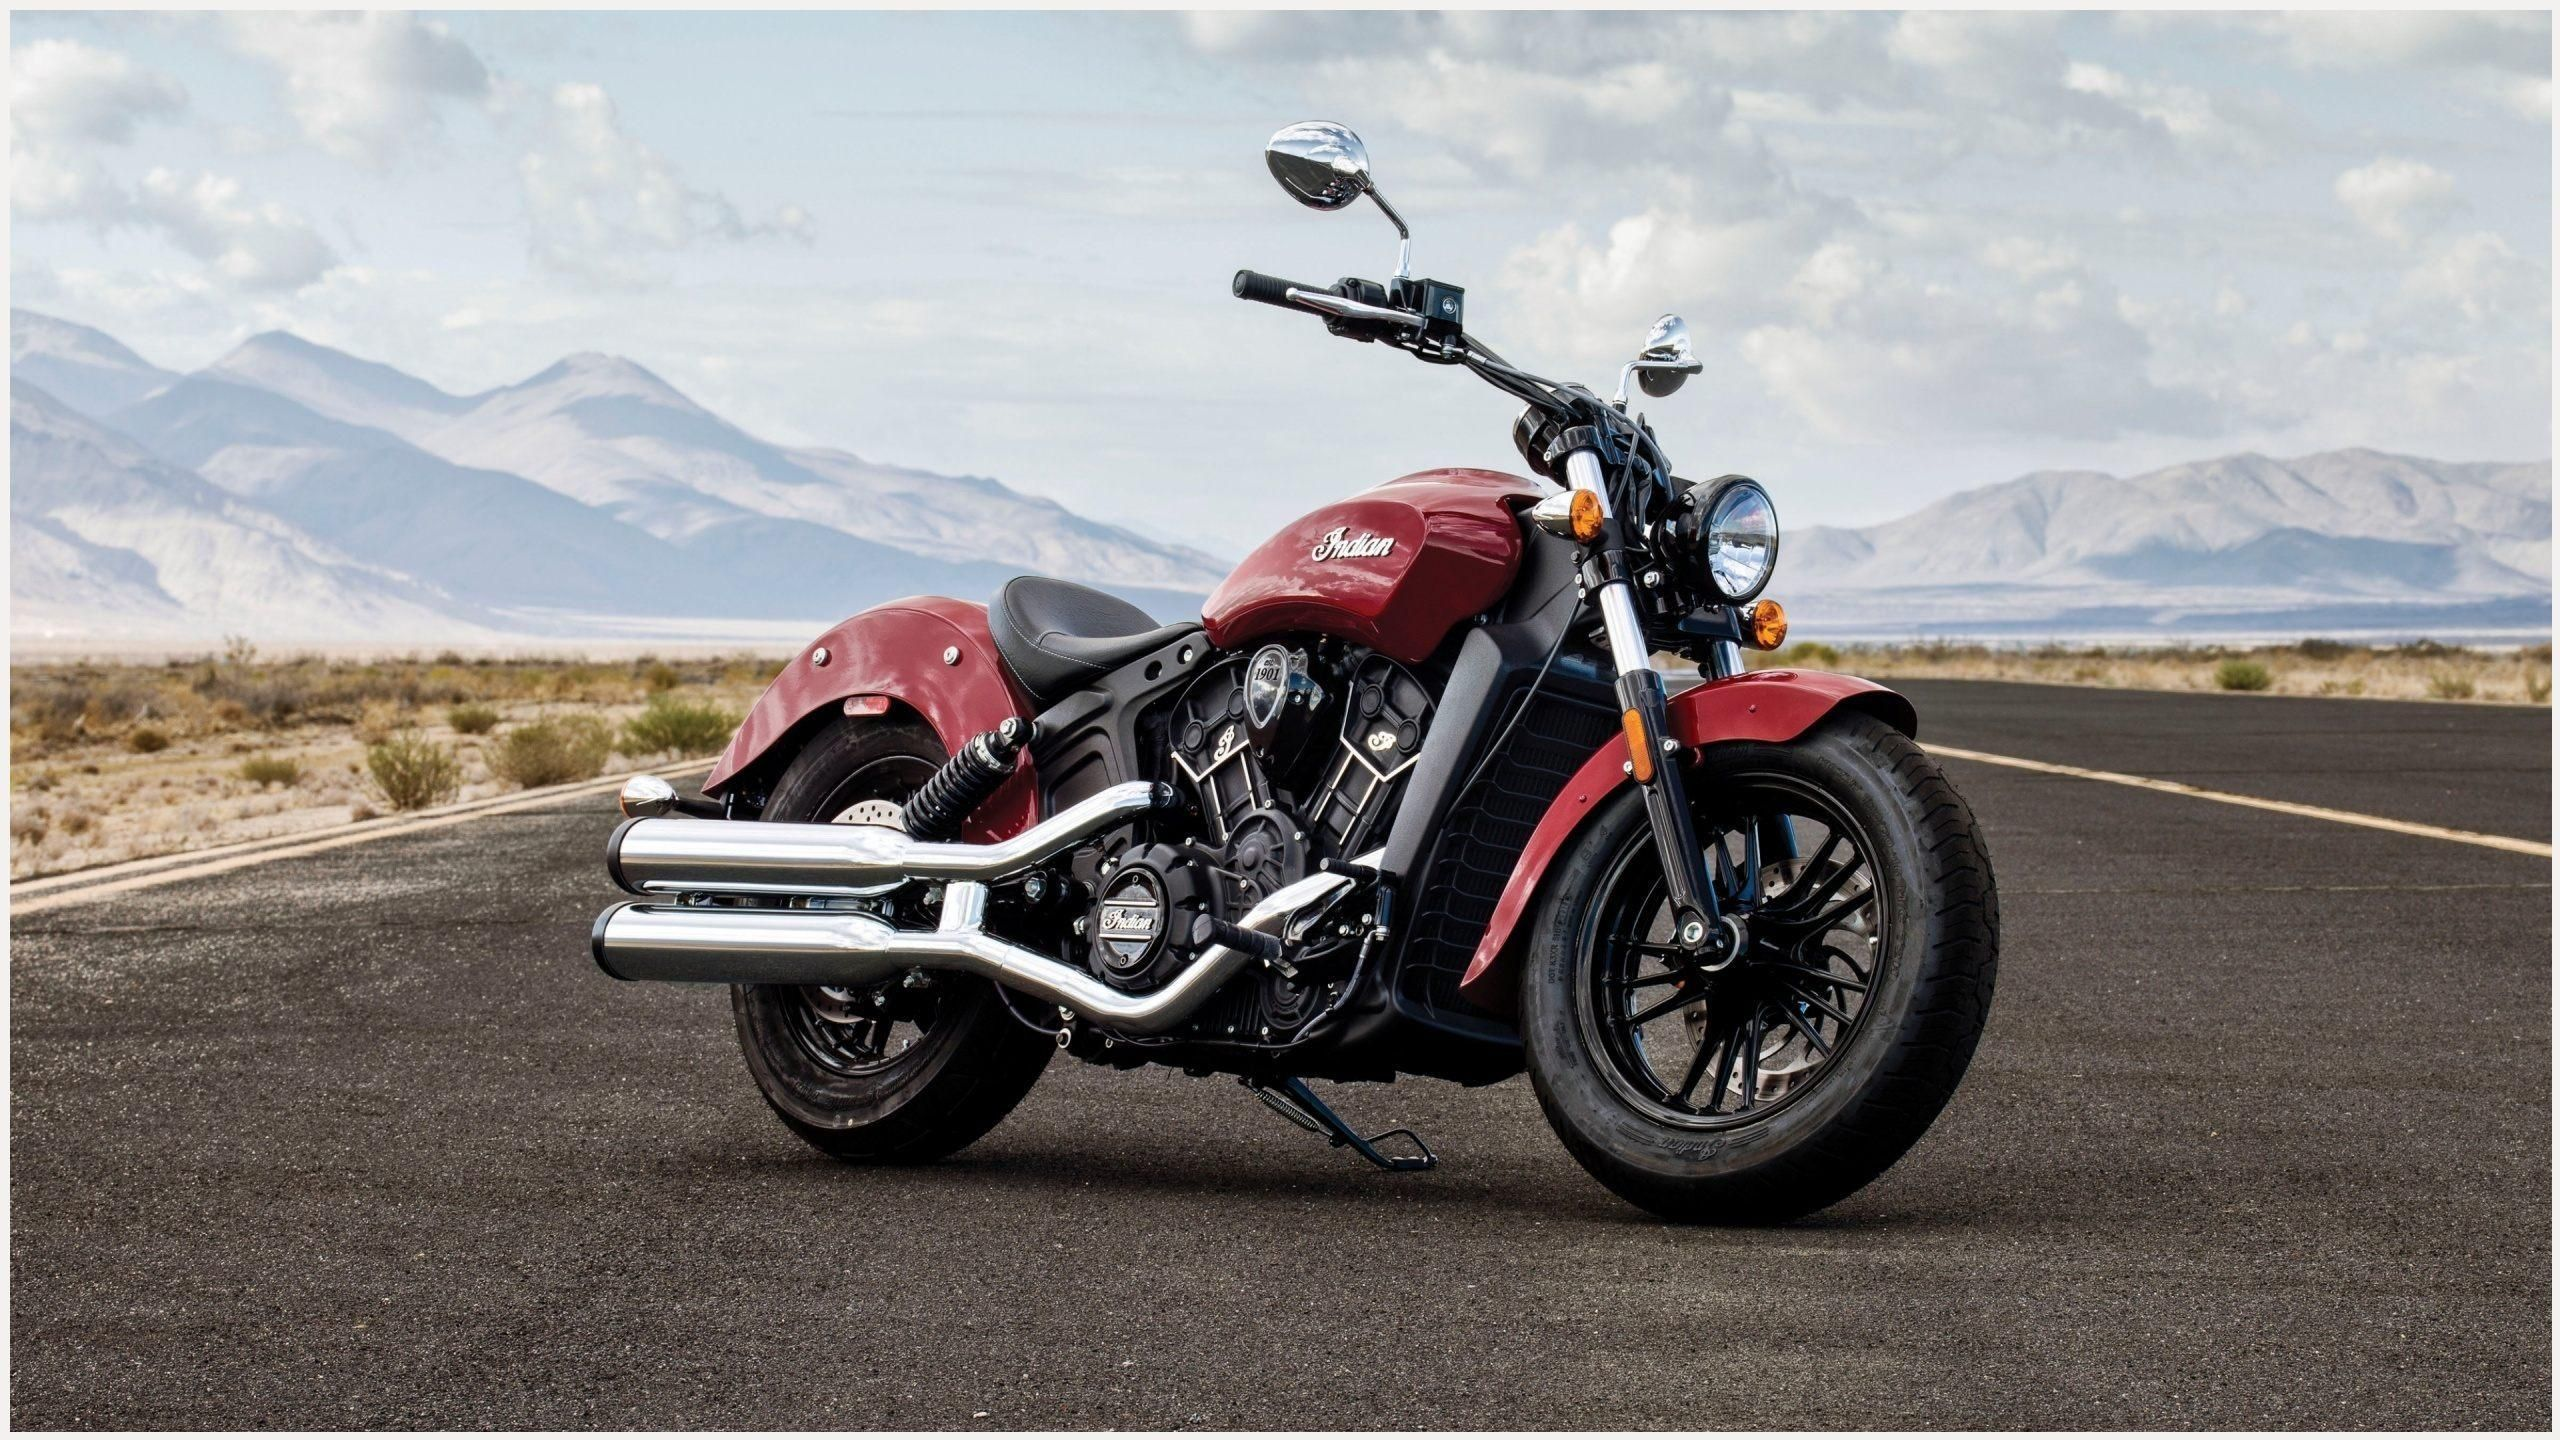 Fresh Indian Scout Motorcycle Wallpaper In 2020 Indian Scout Bike Indian Motorcycle Scout Motorcycle Wallpaper